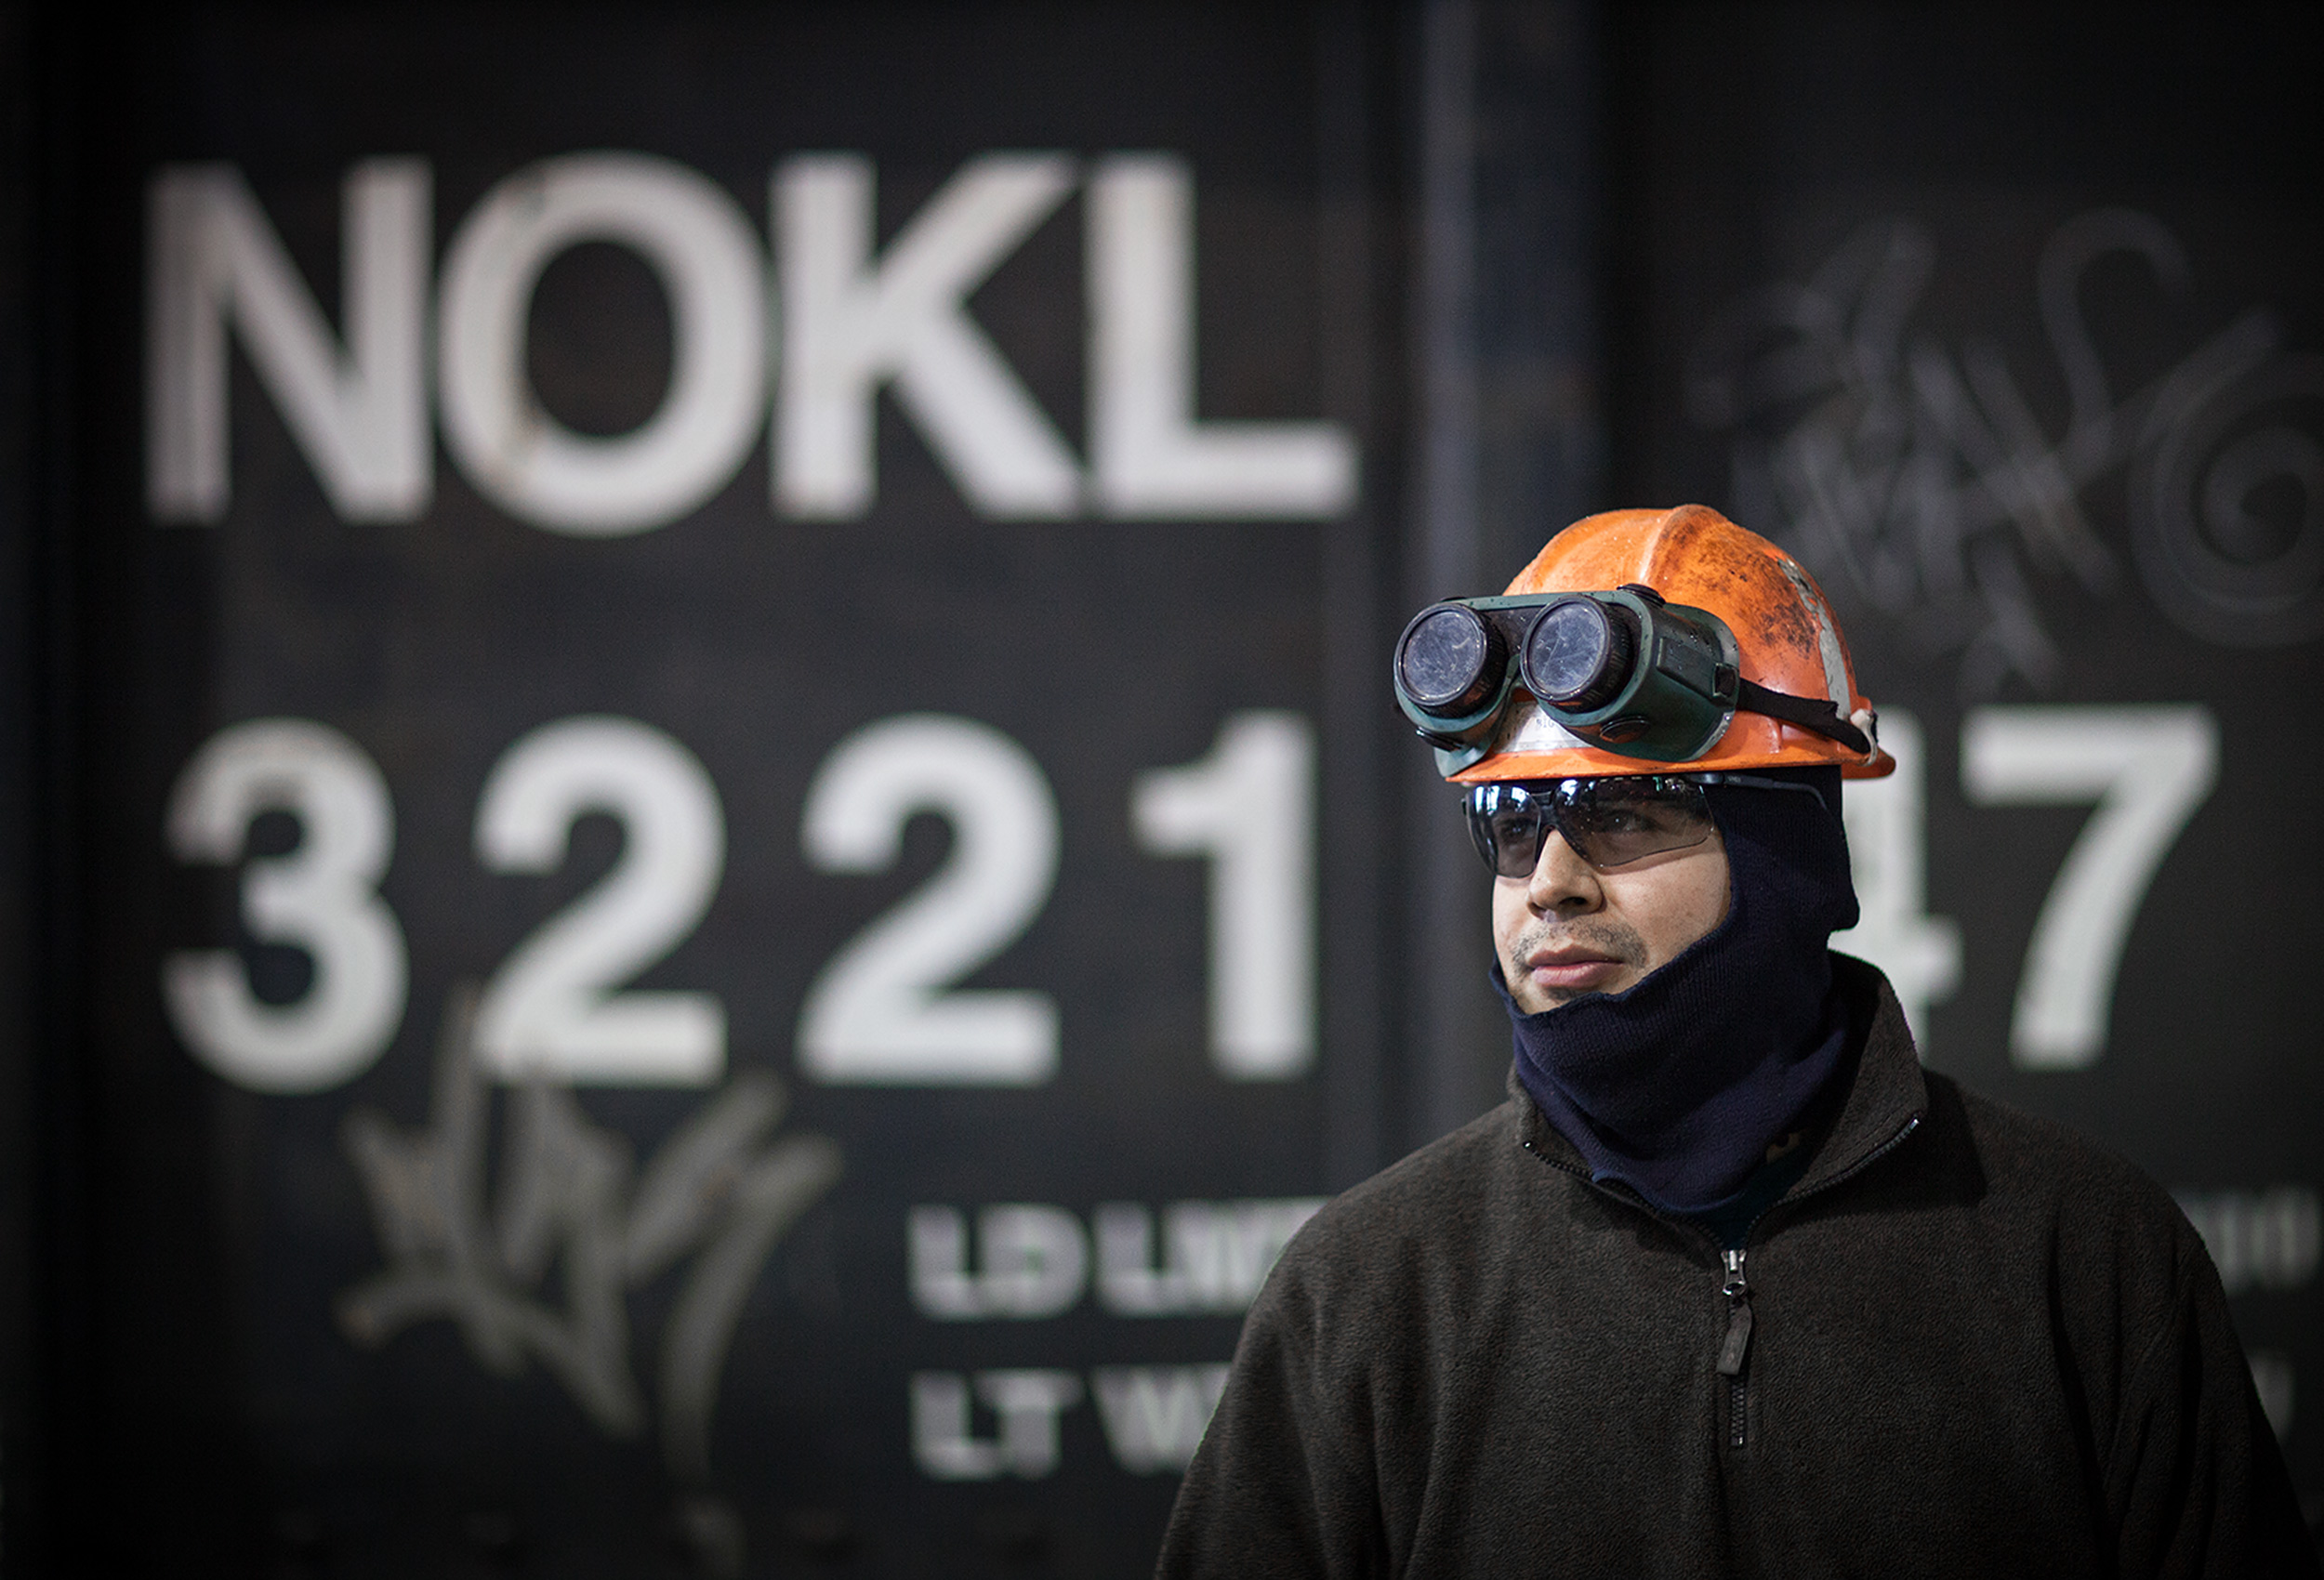 a chicago cp rail employee at their facility in the usa by industrial photographer john hryniuk